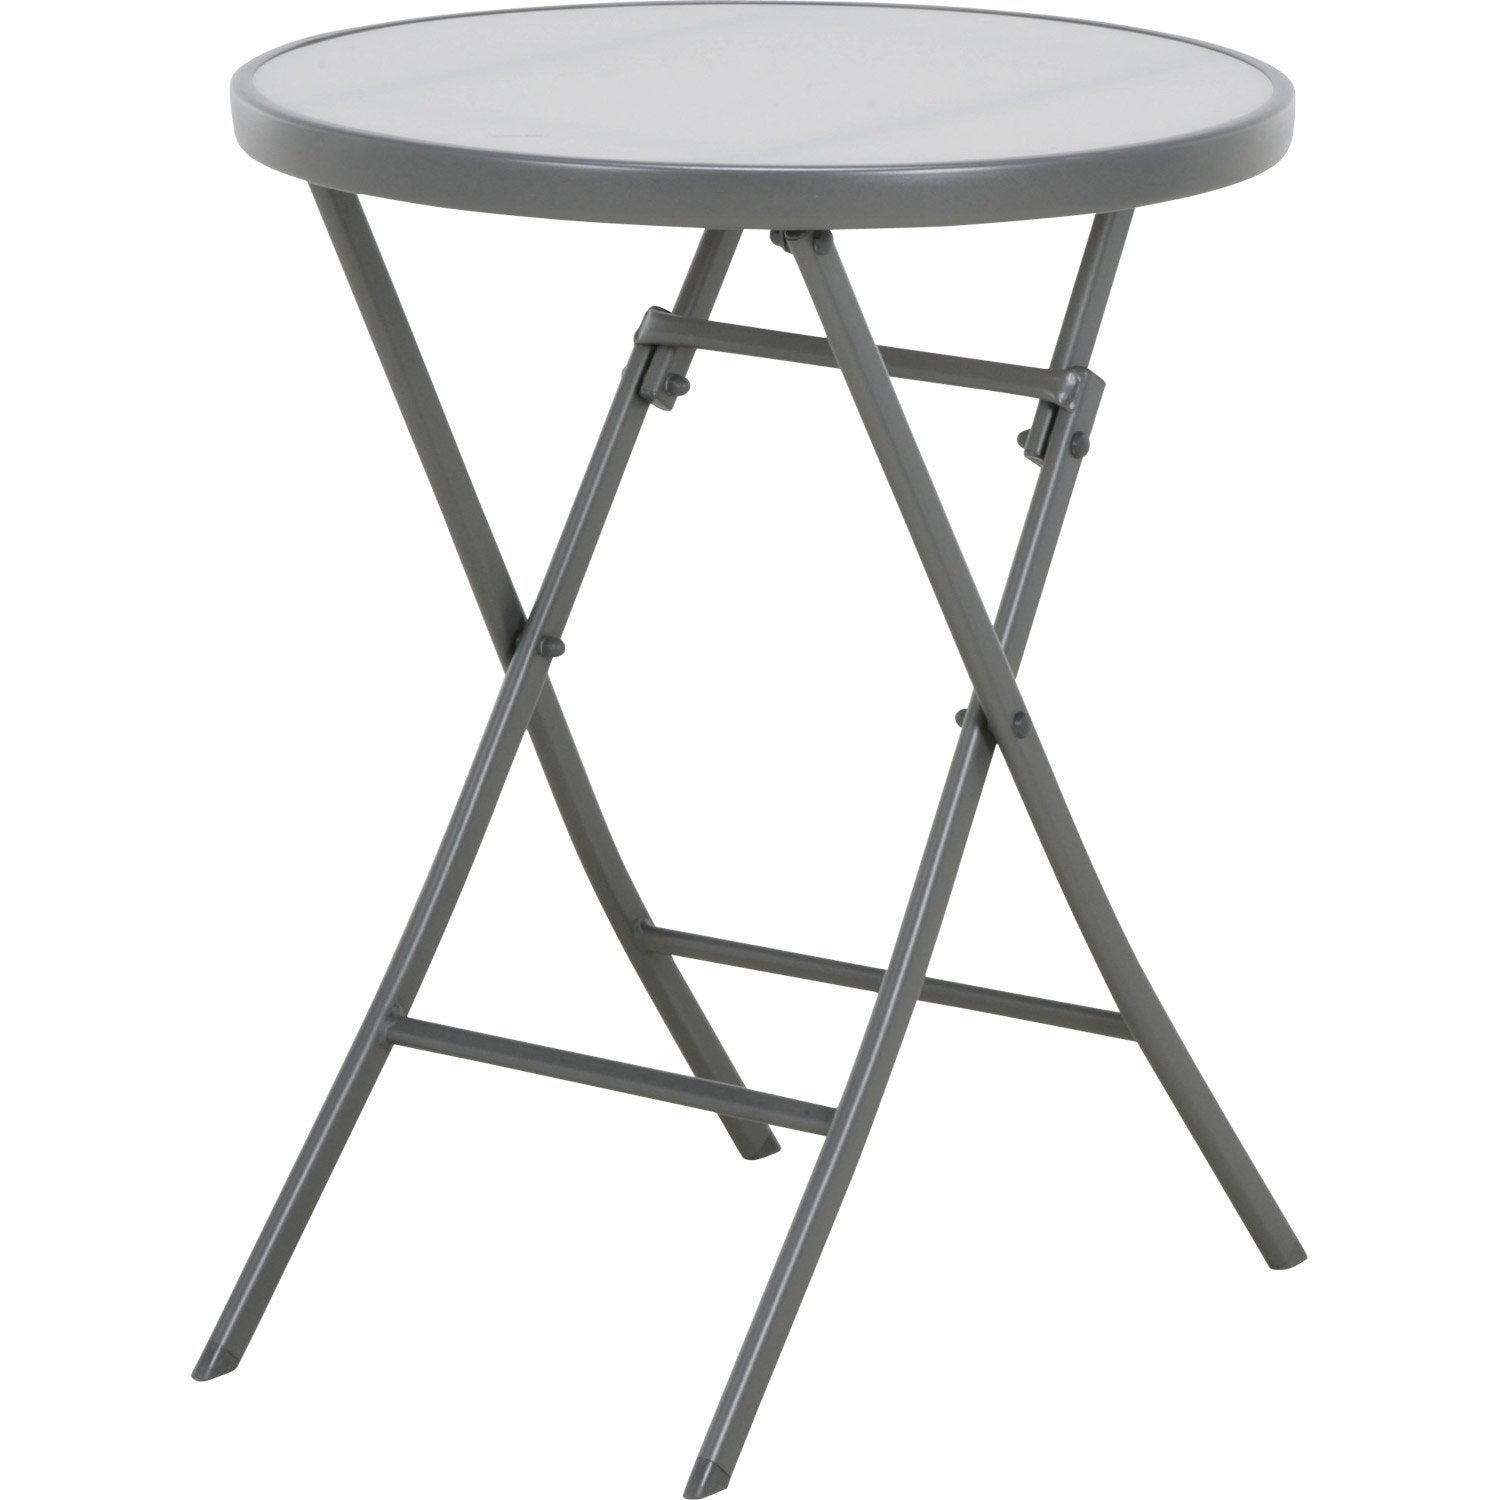 Table de brasserie pliante leroy merlin table de lit - Table pliante leroy merlin ...